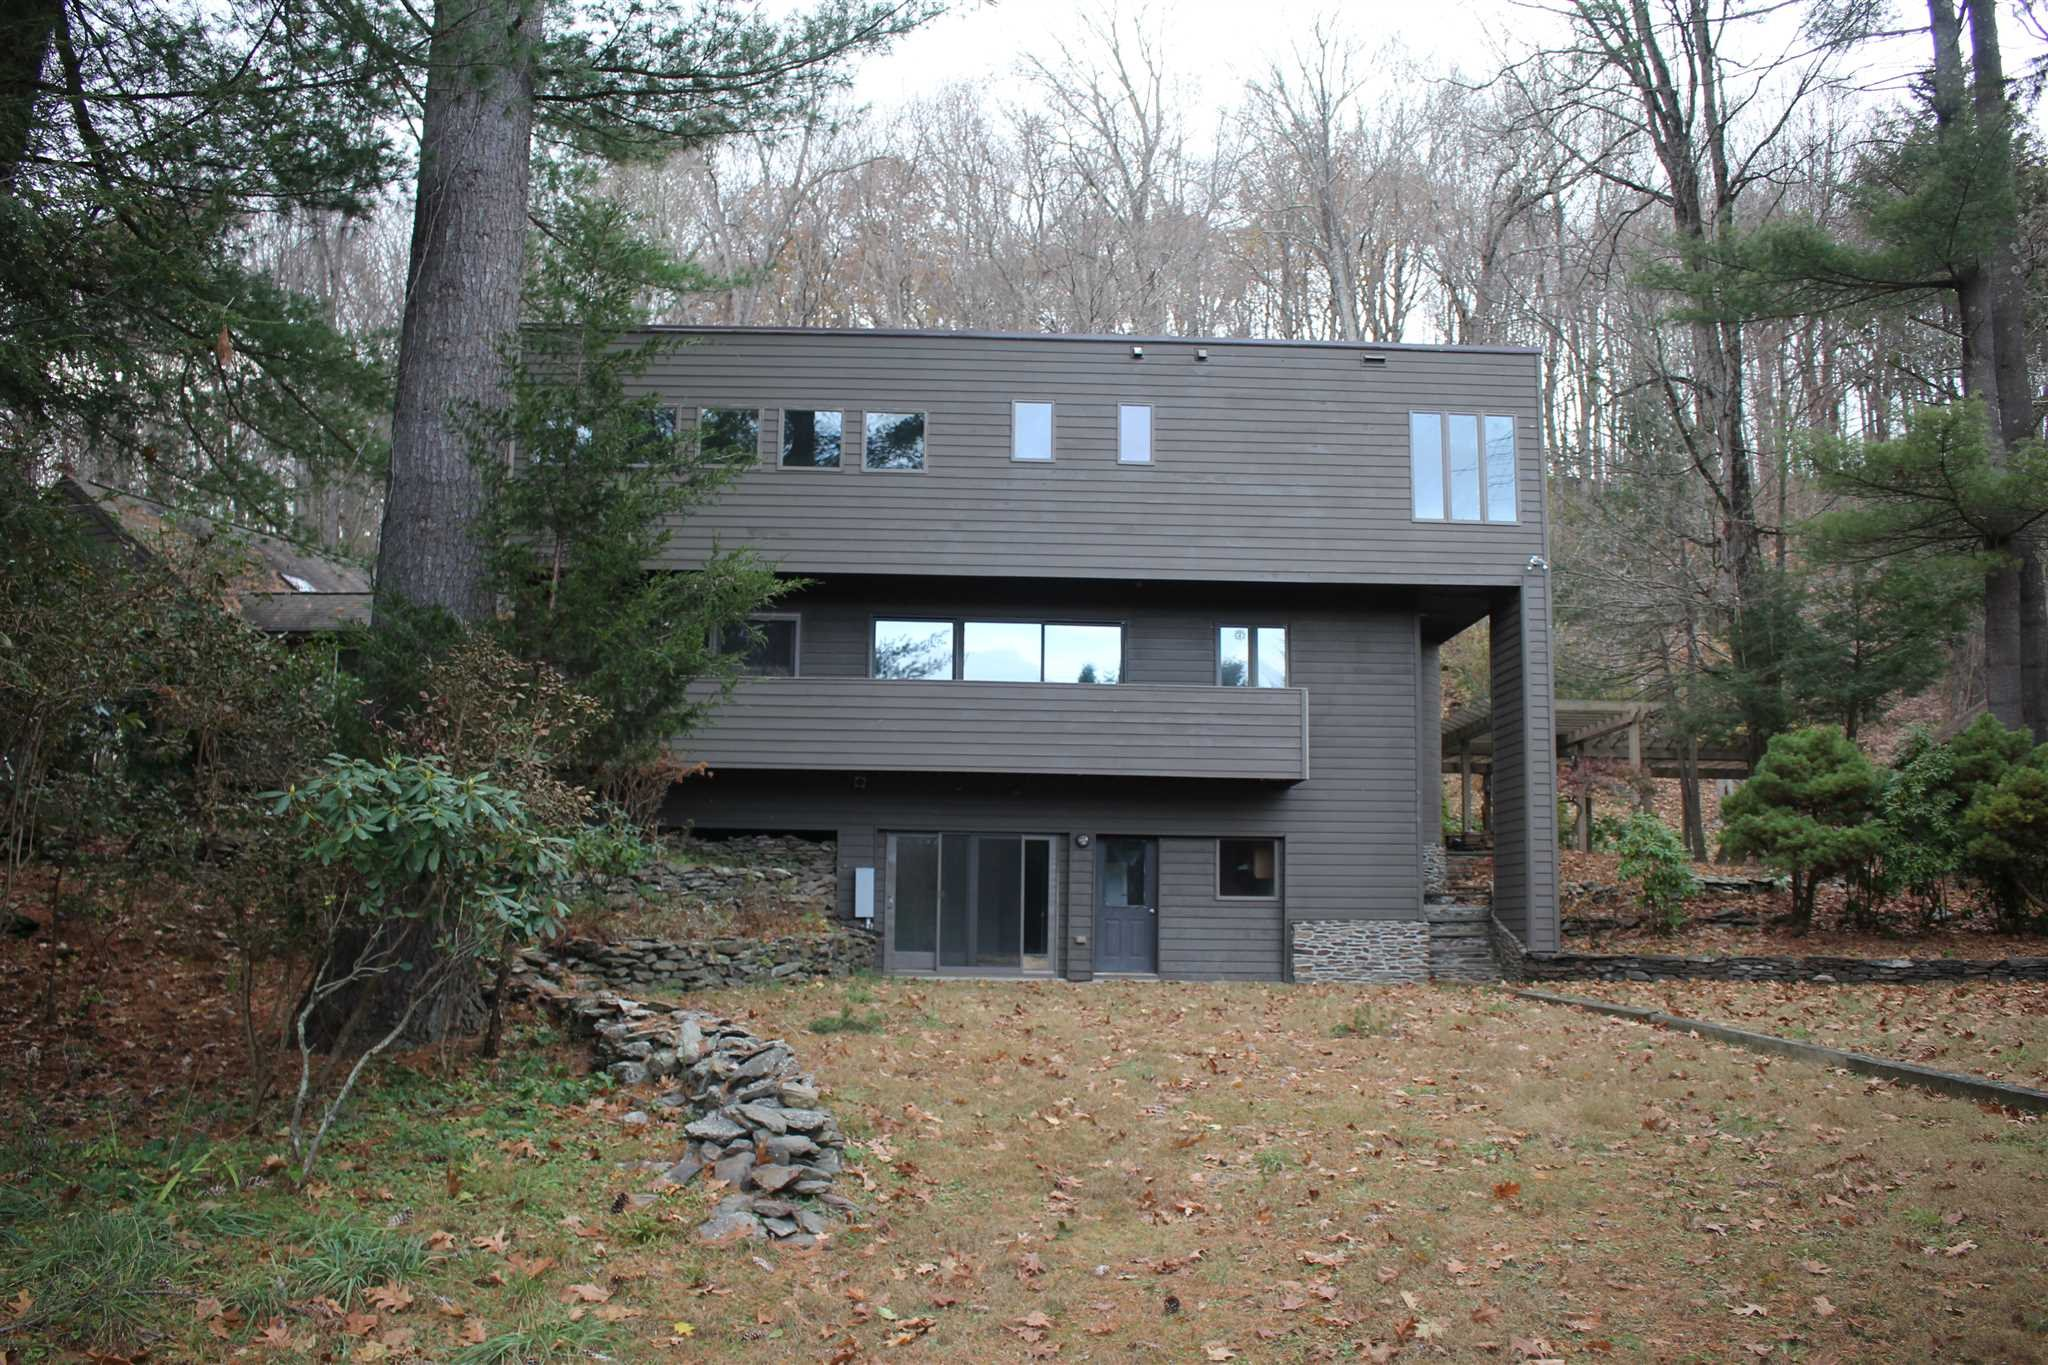 Single Family Home for Sale at 103 YELLOW CITY ROAD 103 YELLOW CITY ROAD Amenia, New York 12501 United States